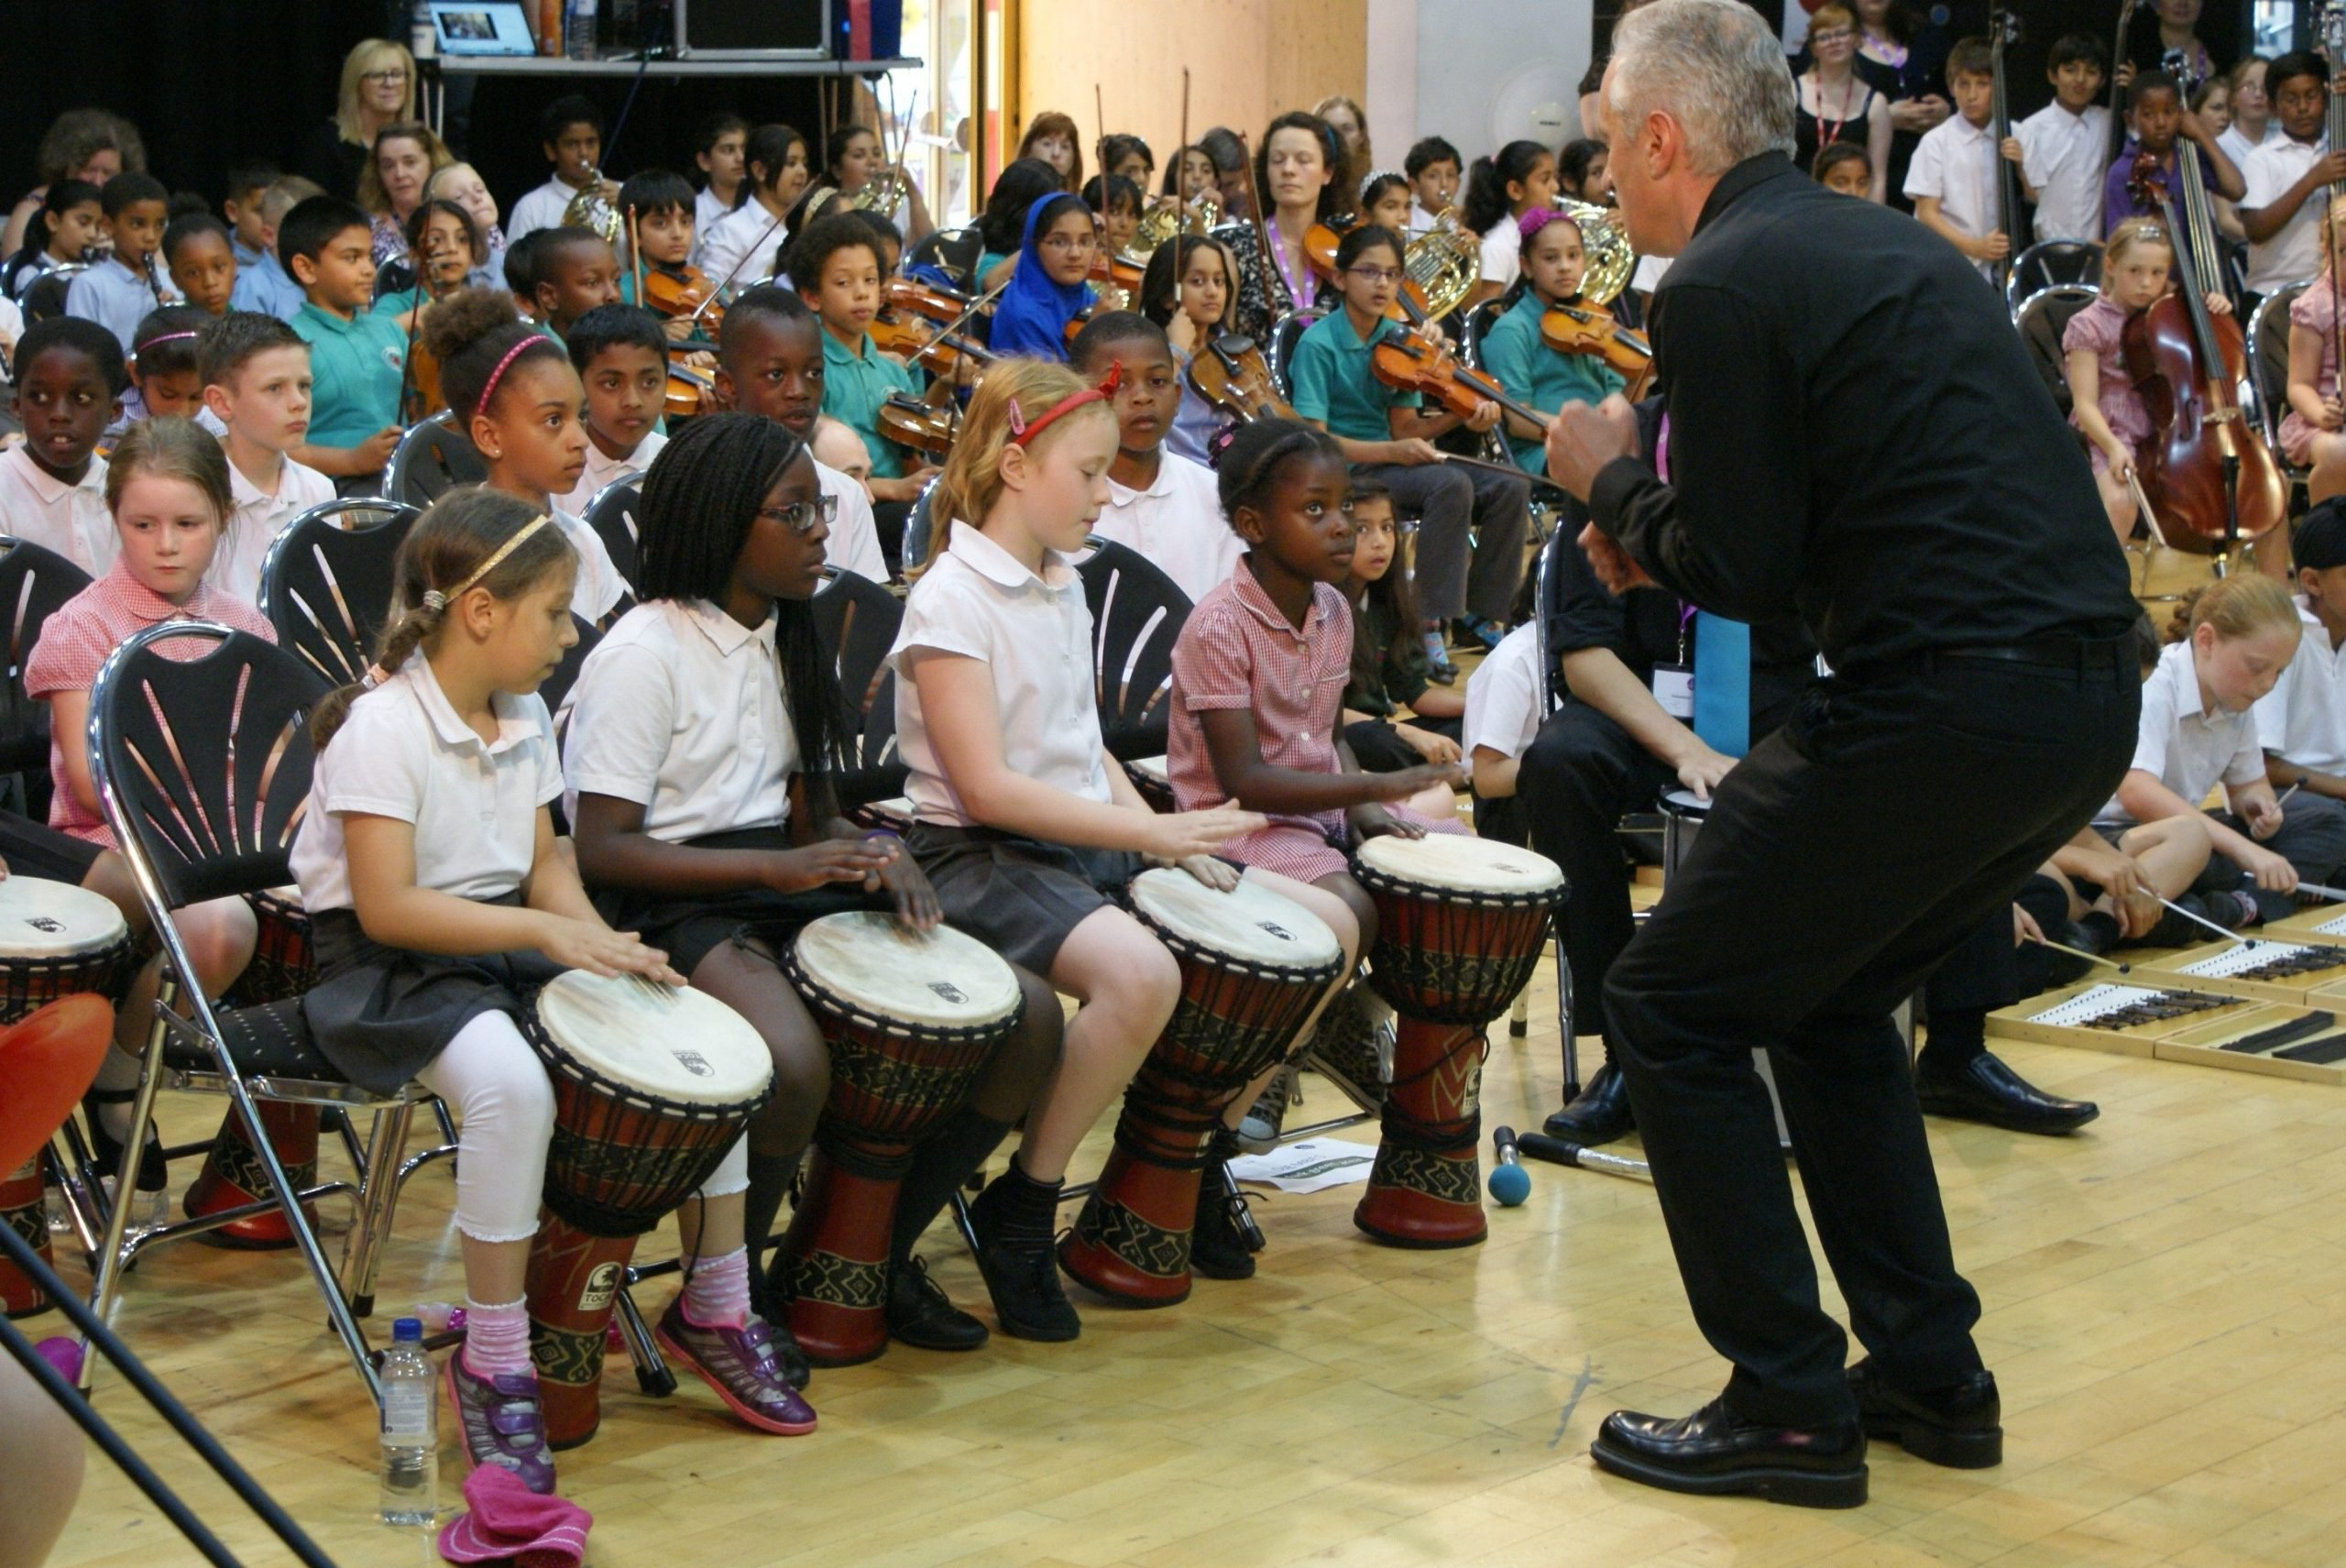 A participatory orchestral commission with Luton Music Service, Orchestras Live and CLS © Chris Lennon